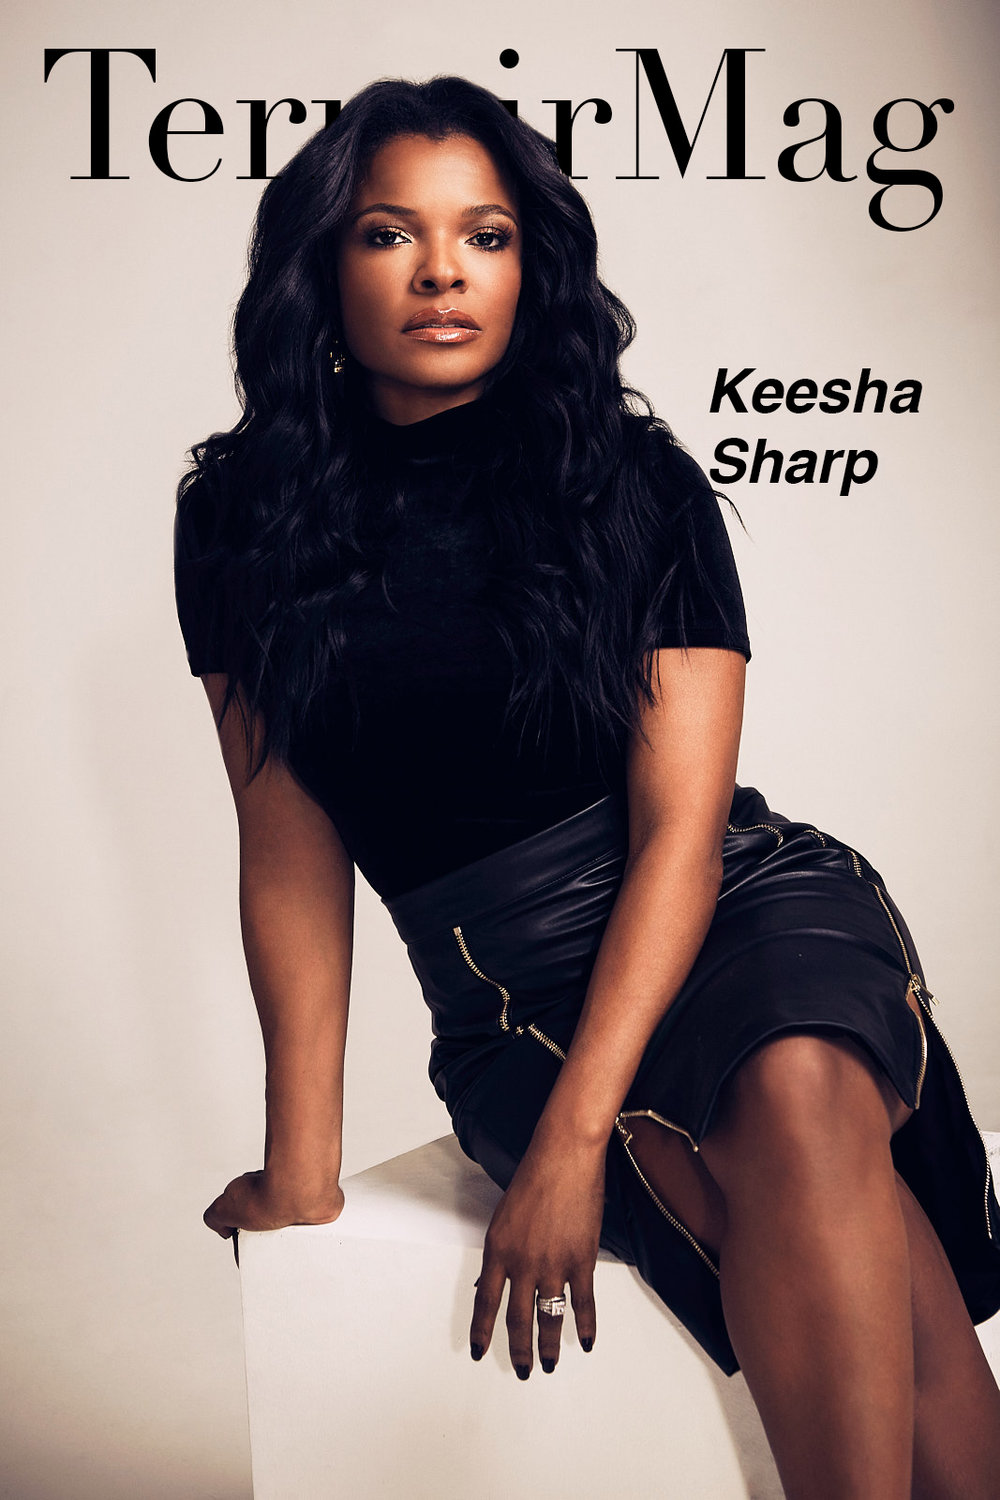 Keesha Sharp Keesha Sharp new picture